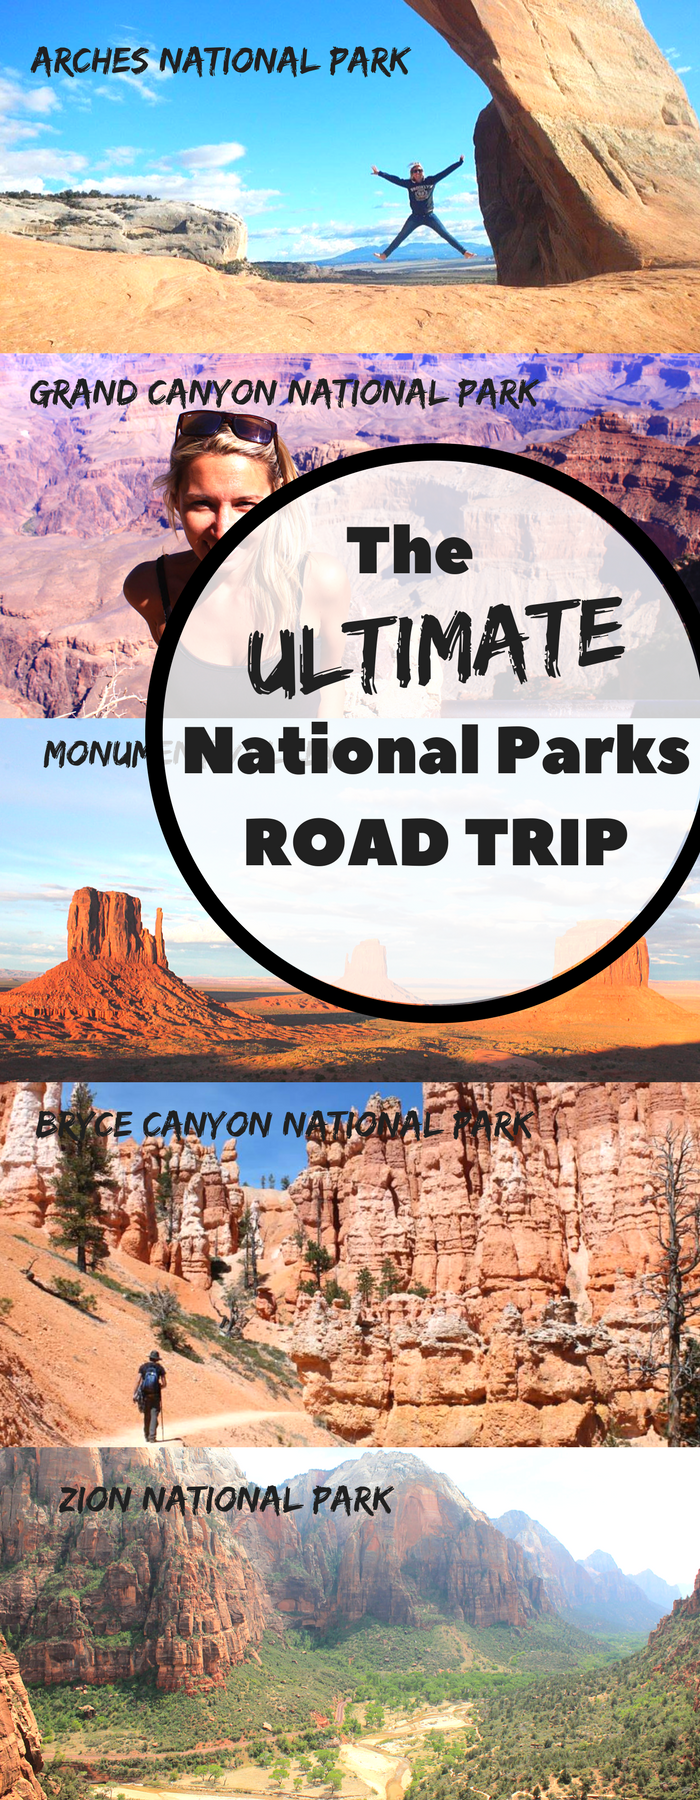 The highlights of this road trip include a visit to four of America's National Parks and one National Monument (however you could easily add side trips to Mesa Verde and Capital Reed National Parks if you have the time). Allow at least a minimum of two or three nights at each place as you will need time to explore all of the parks